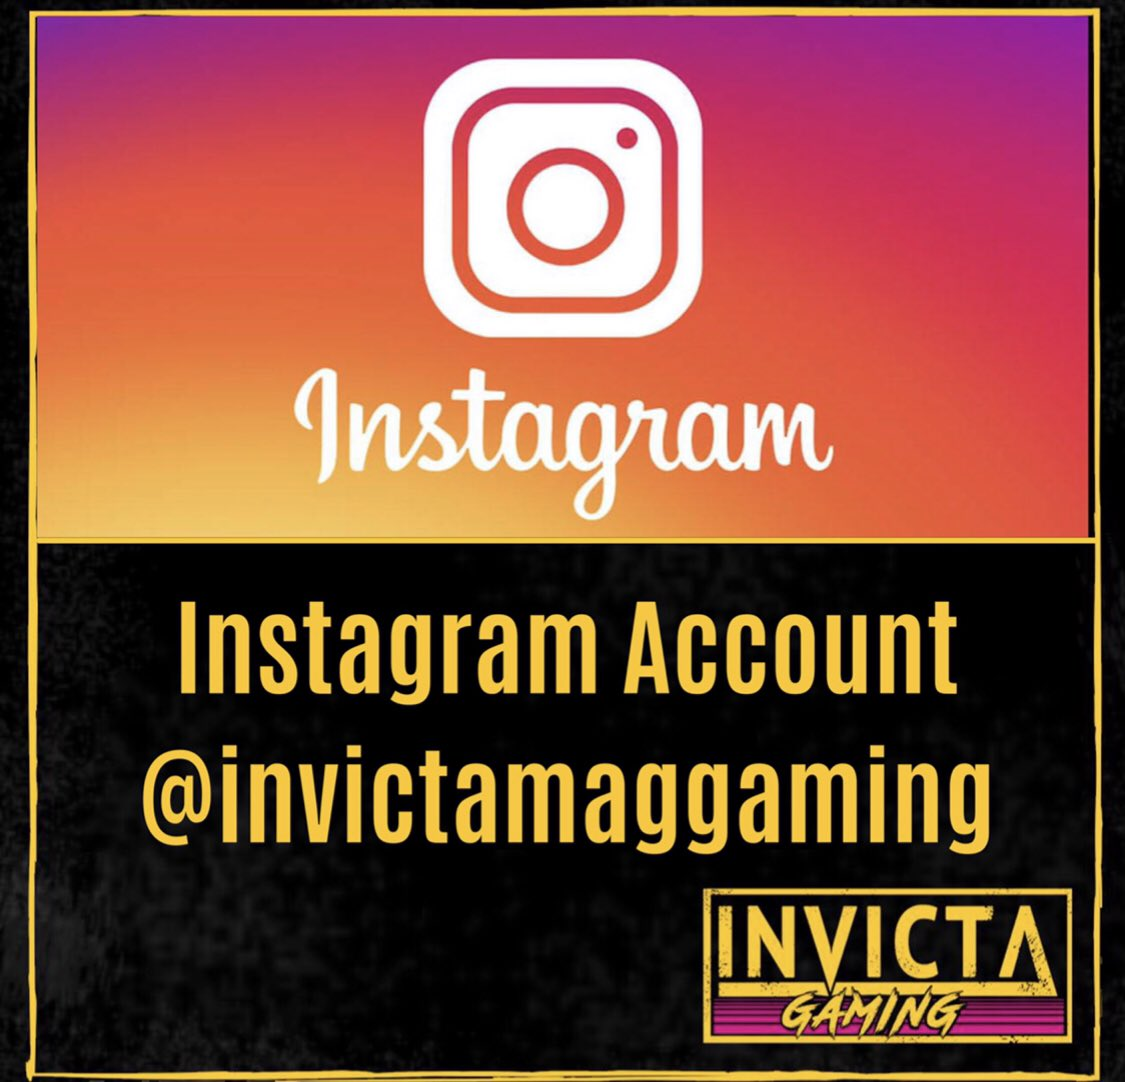 INSTAGRAM   Monday's come around so fast don't they?  If you would like some busy thumb work to get you through be sure to follow our Instagram for more posts and stories.  https://www.instagram.com/invictamaggaming/ …  #instagram #instagramers #gaming #socialmedia #gamerspic.twitter.com/GxR0KpVh3S